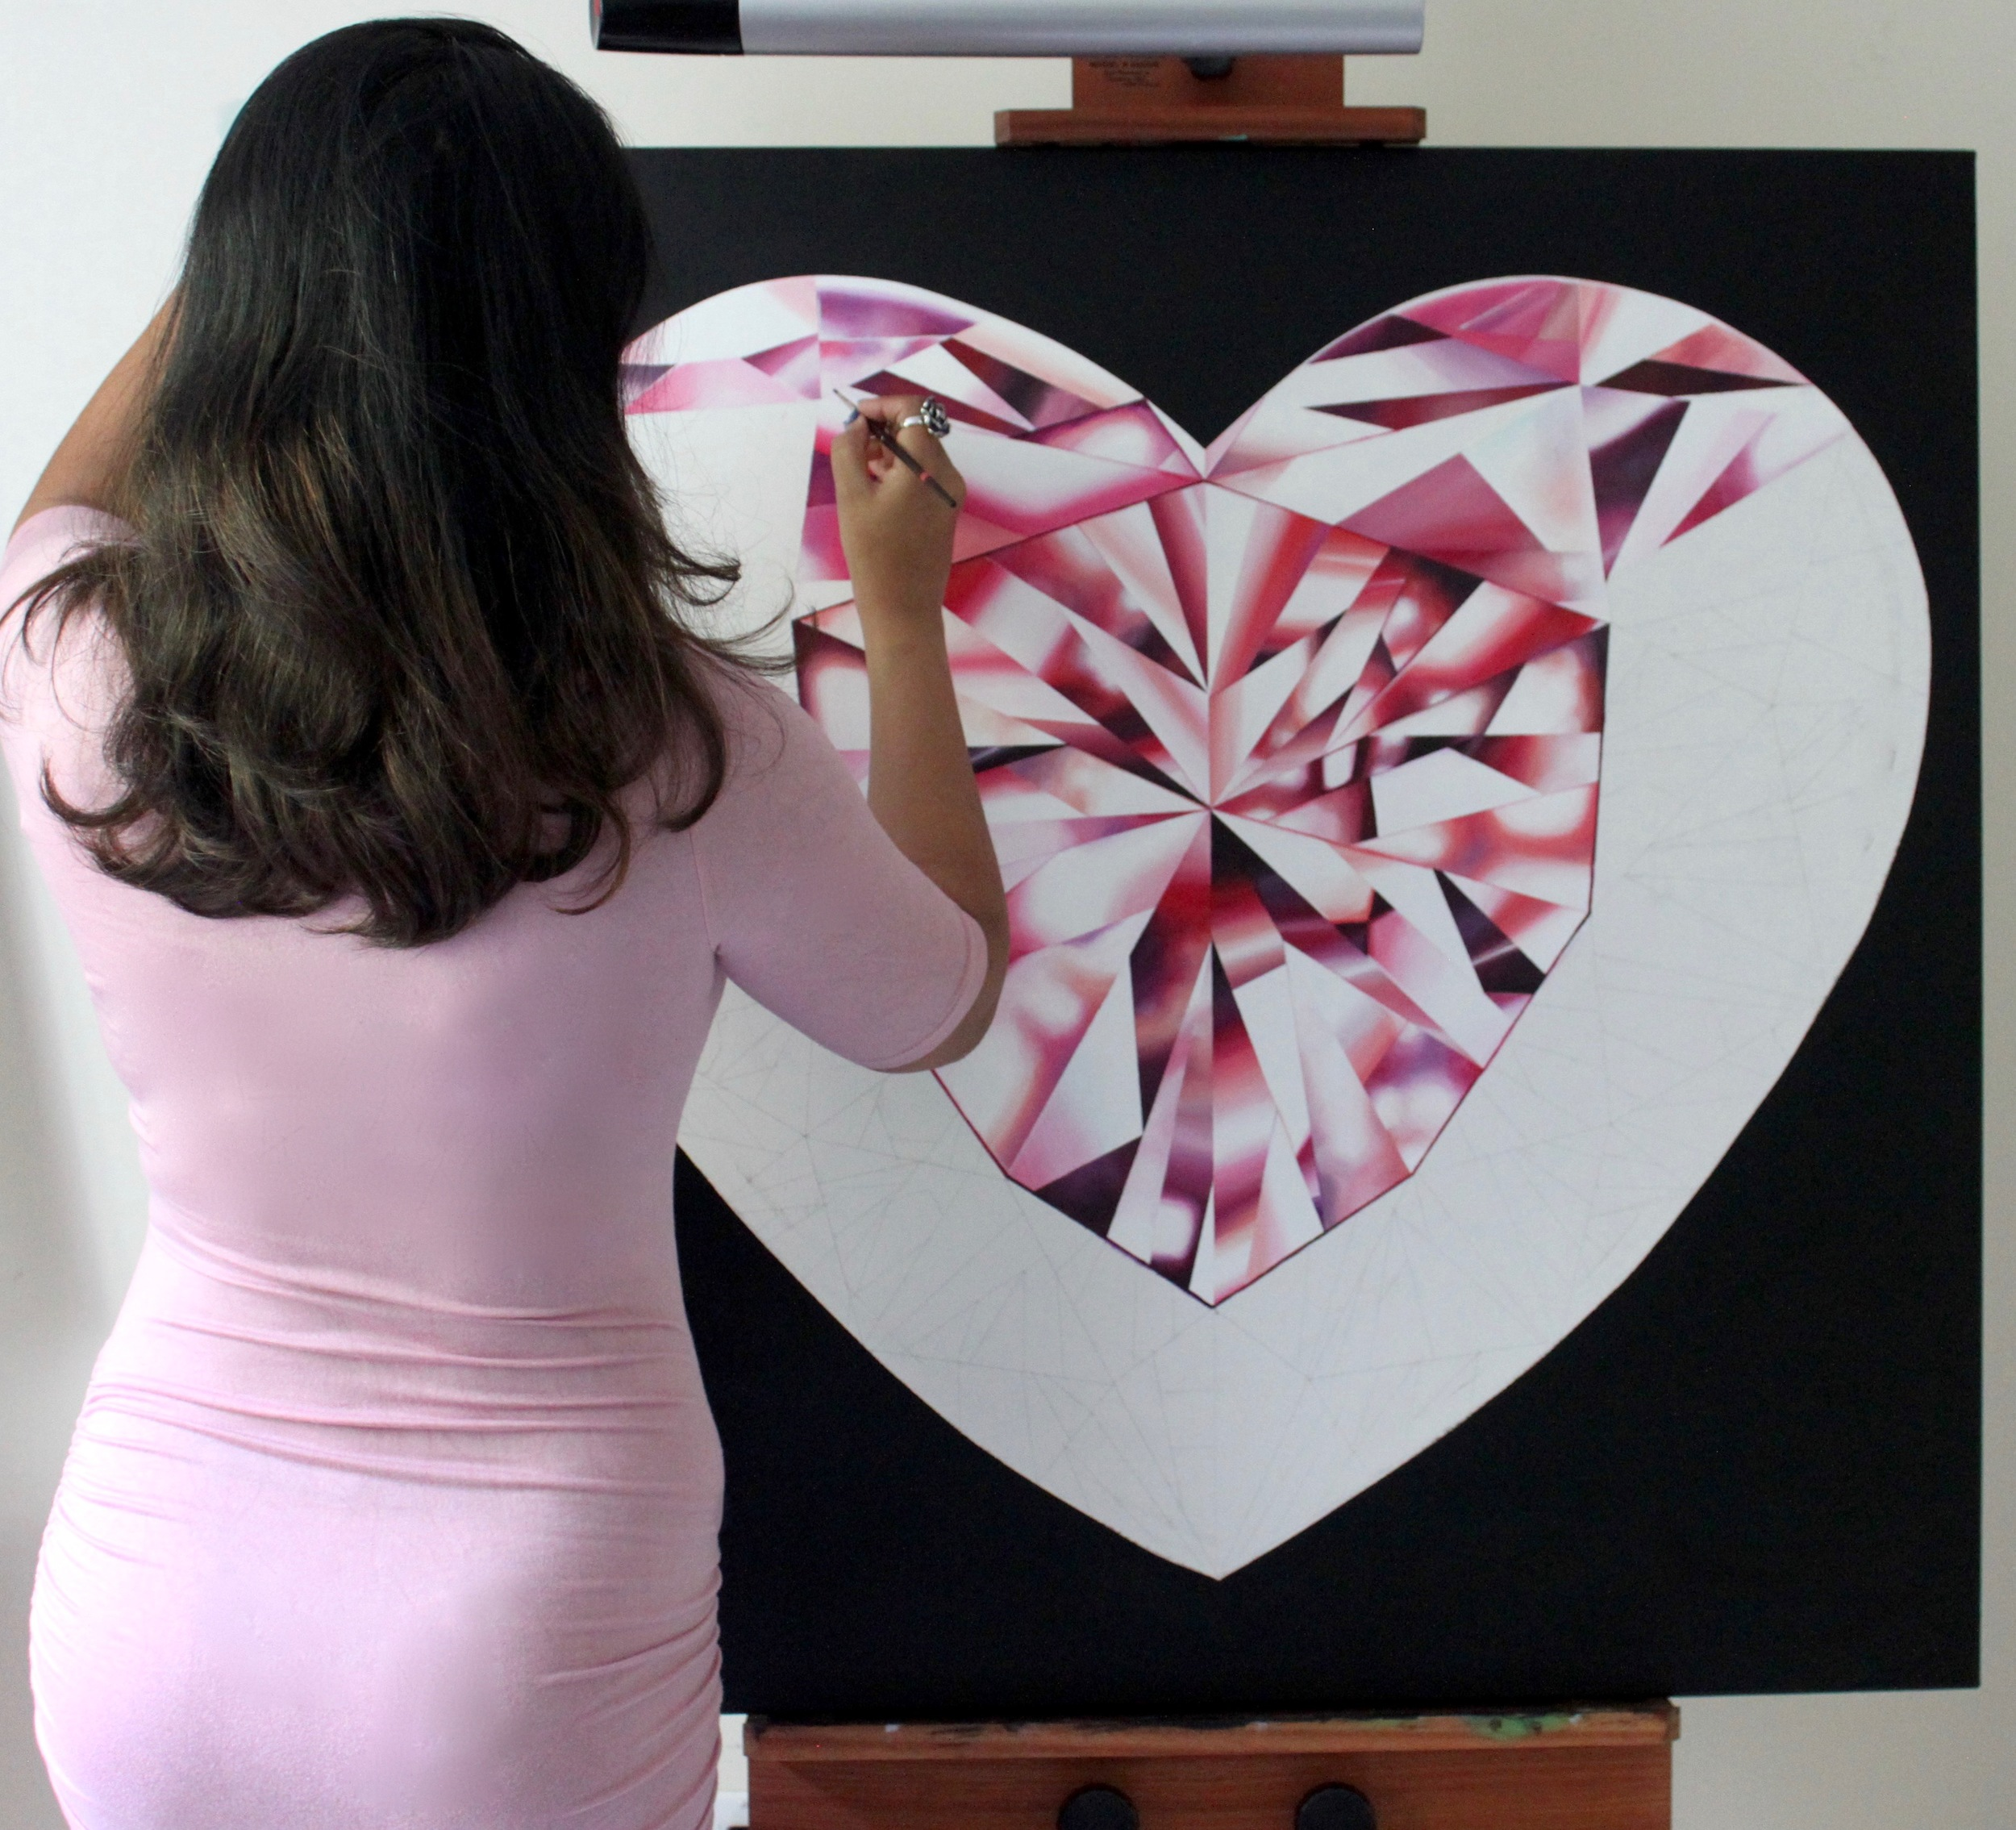 Reena Ahluwalia at her studio working on the 'Passionate Heart' - Portrait of a Pink Heart-Shaped Diamond. 36 x 36 inches. Acrylic on Canvas. ©Reena Ahluwalia